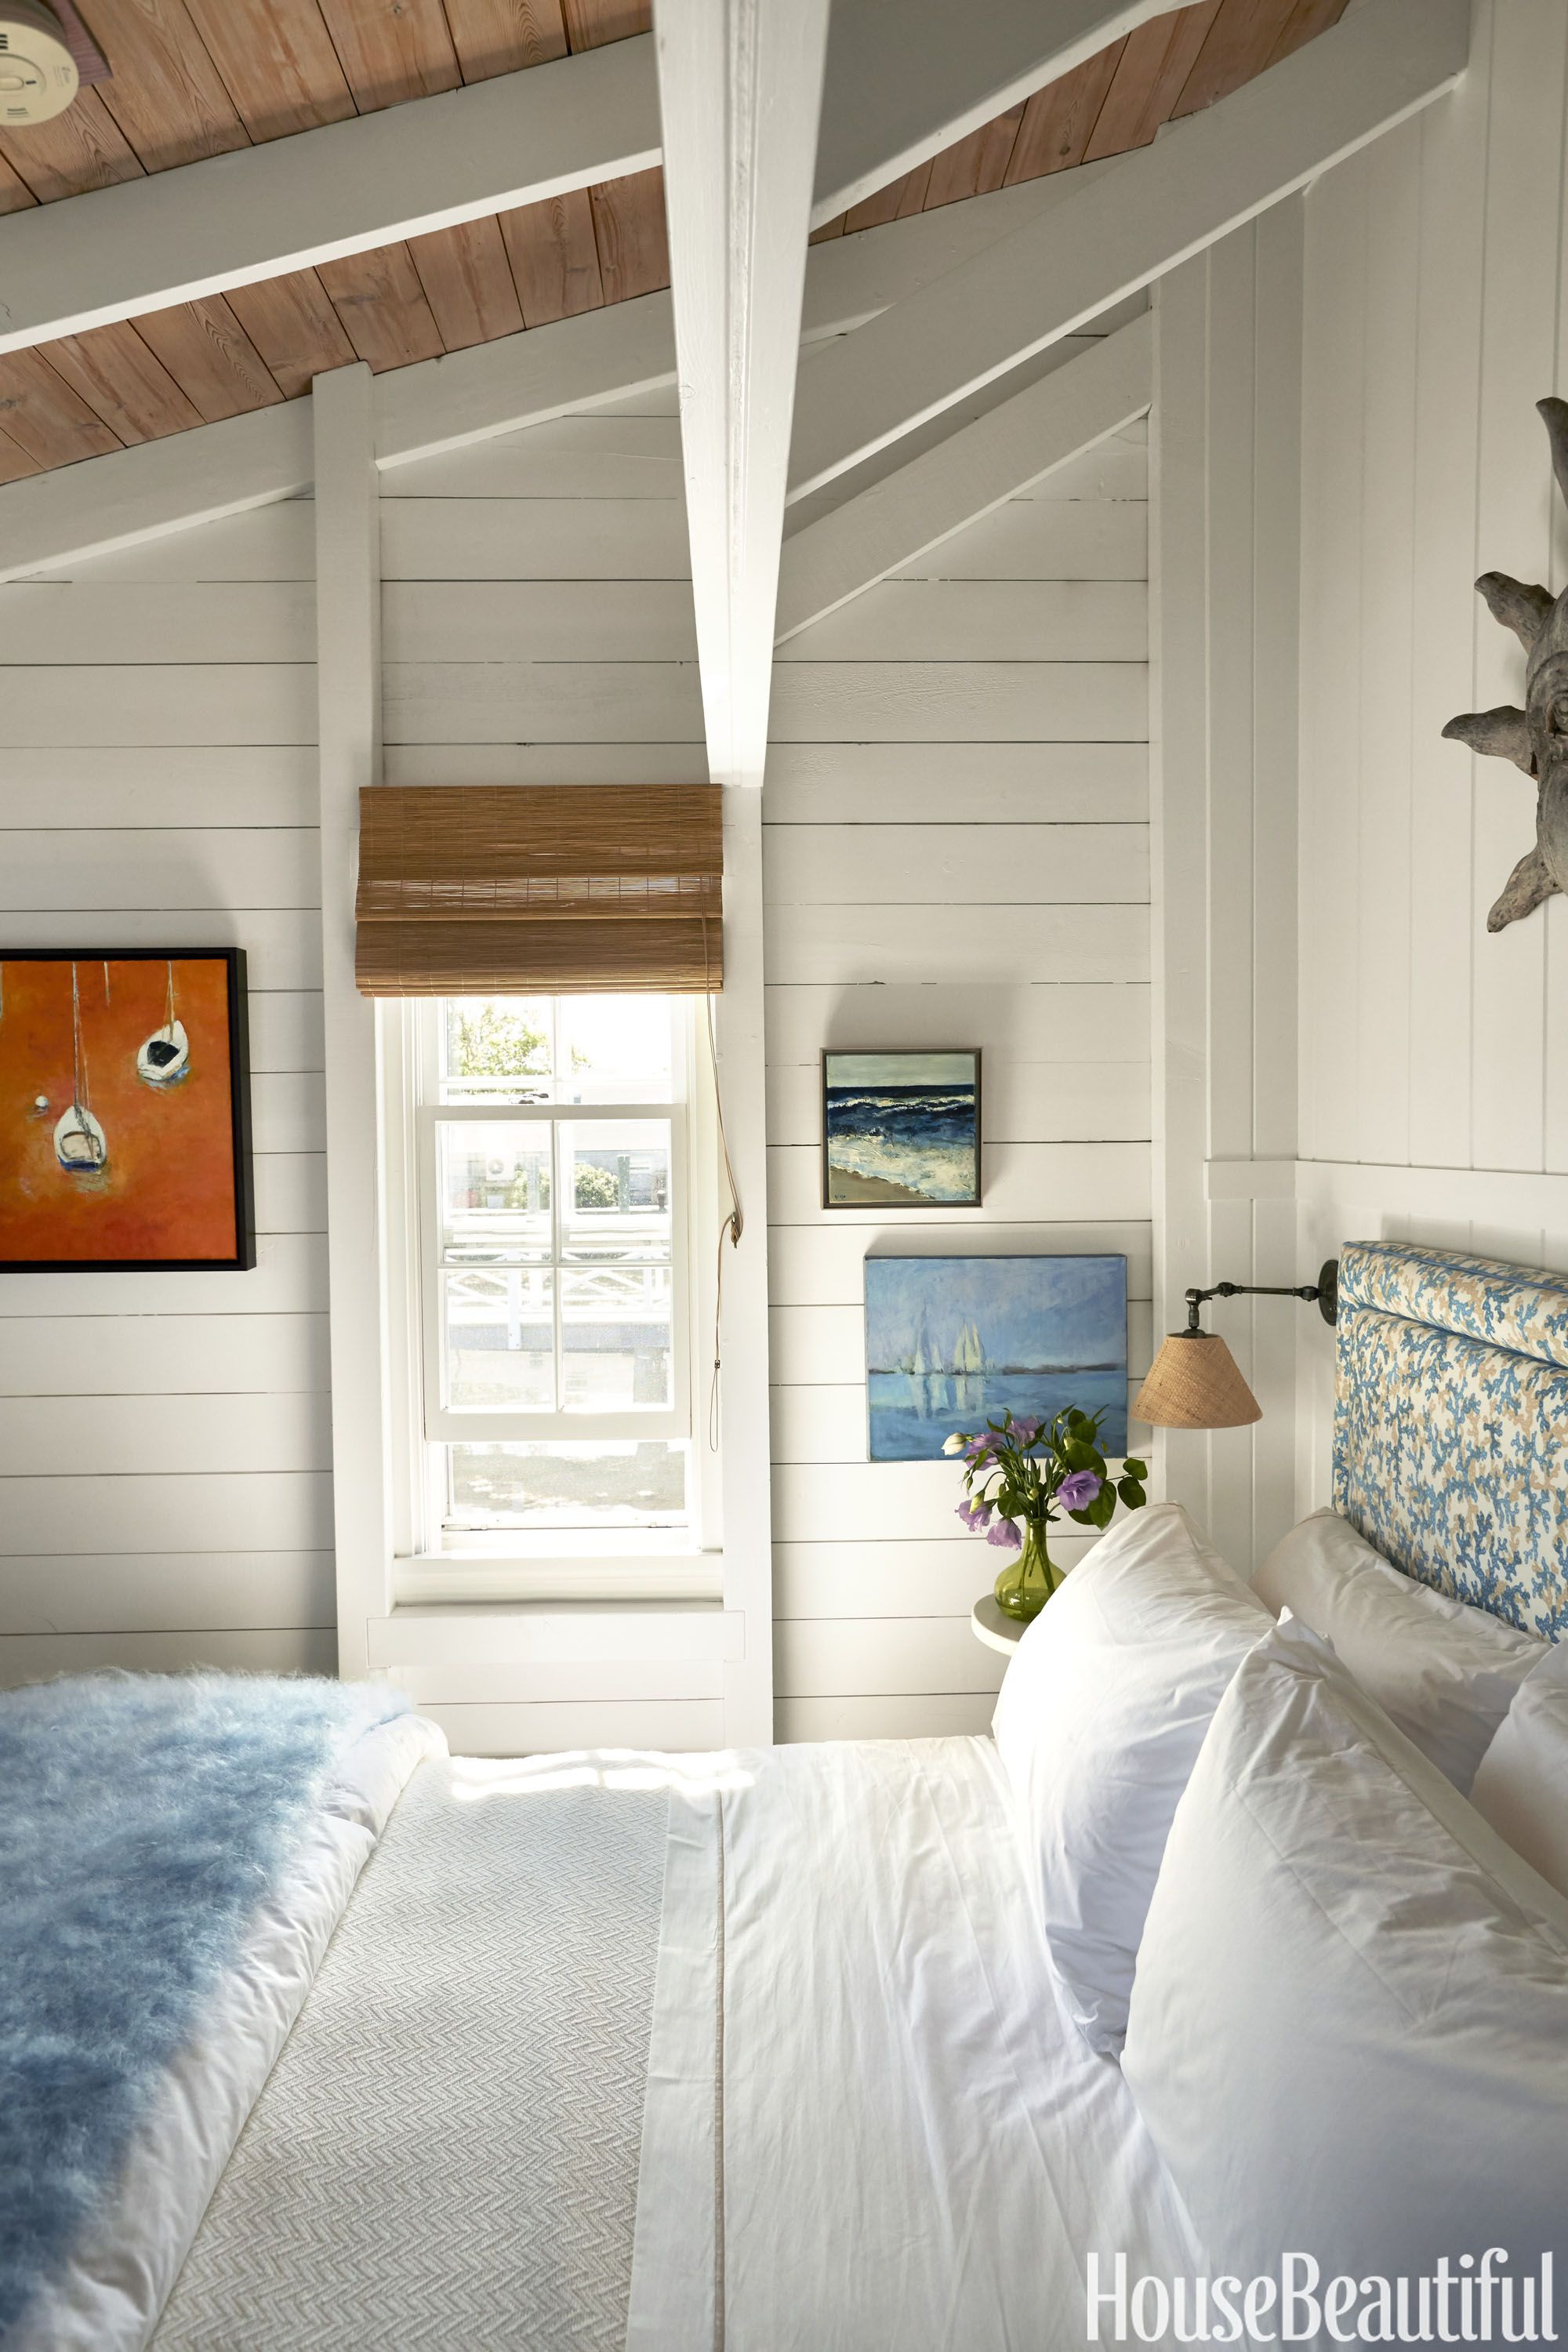 https://hips.hearstapps.com/hbu.h-cdn.co/assets/15/30/1437419558-nautical-bedroom.jpg